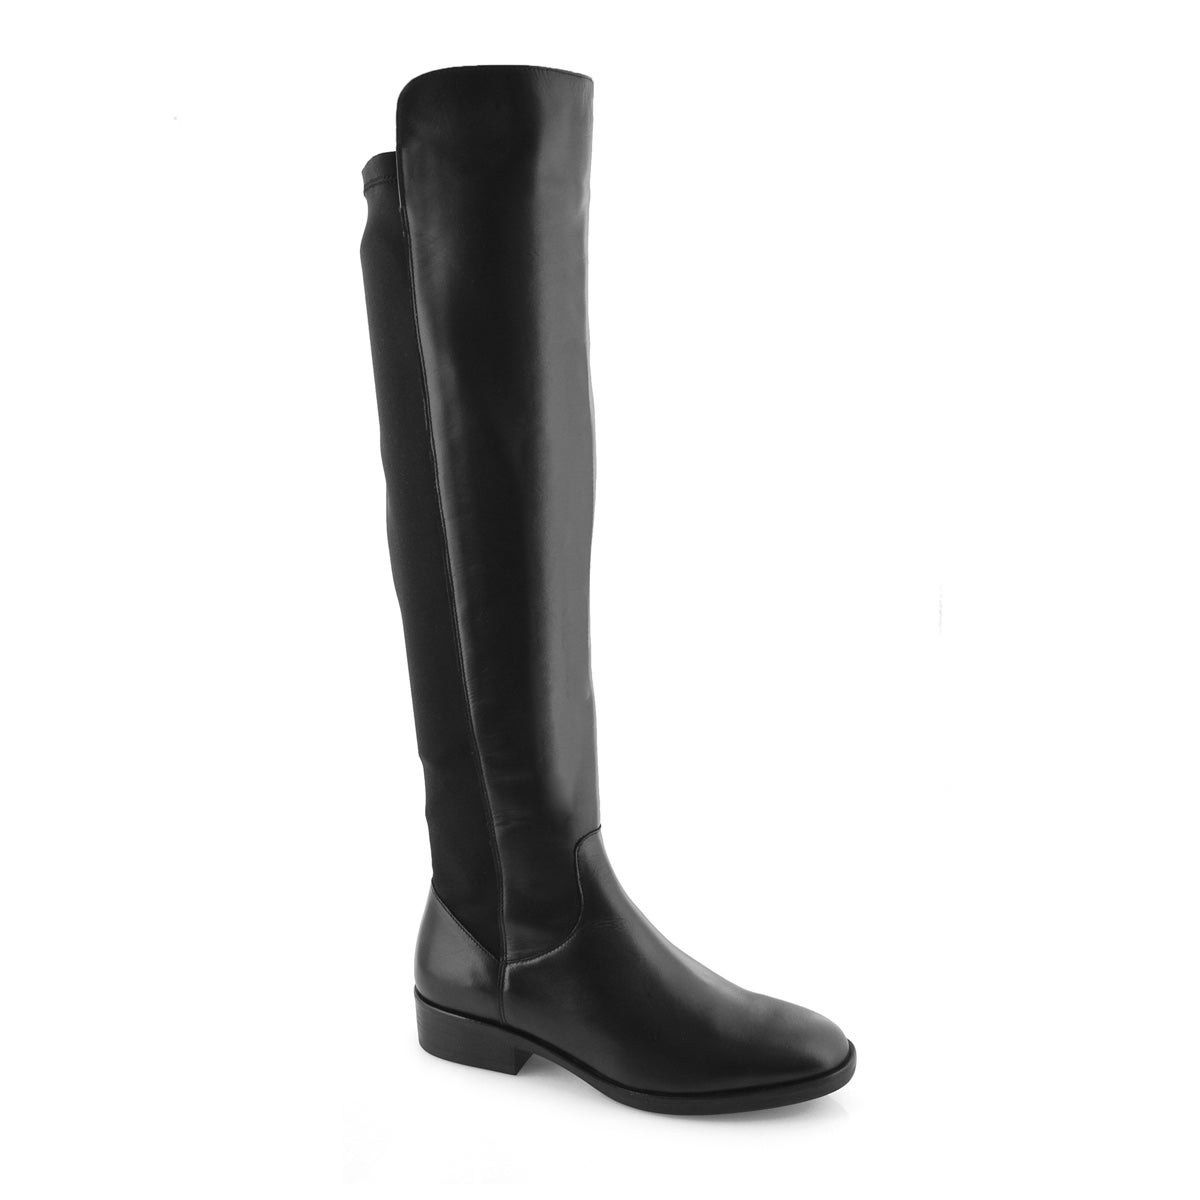 Women's PURE CADDY black leather tall dress boot